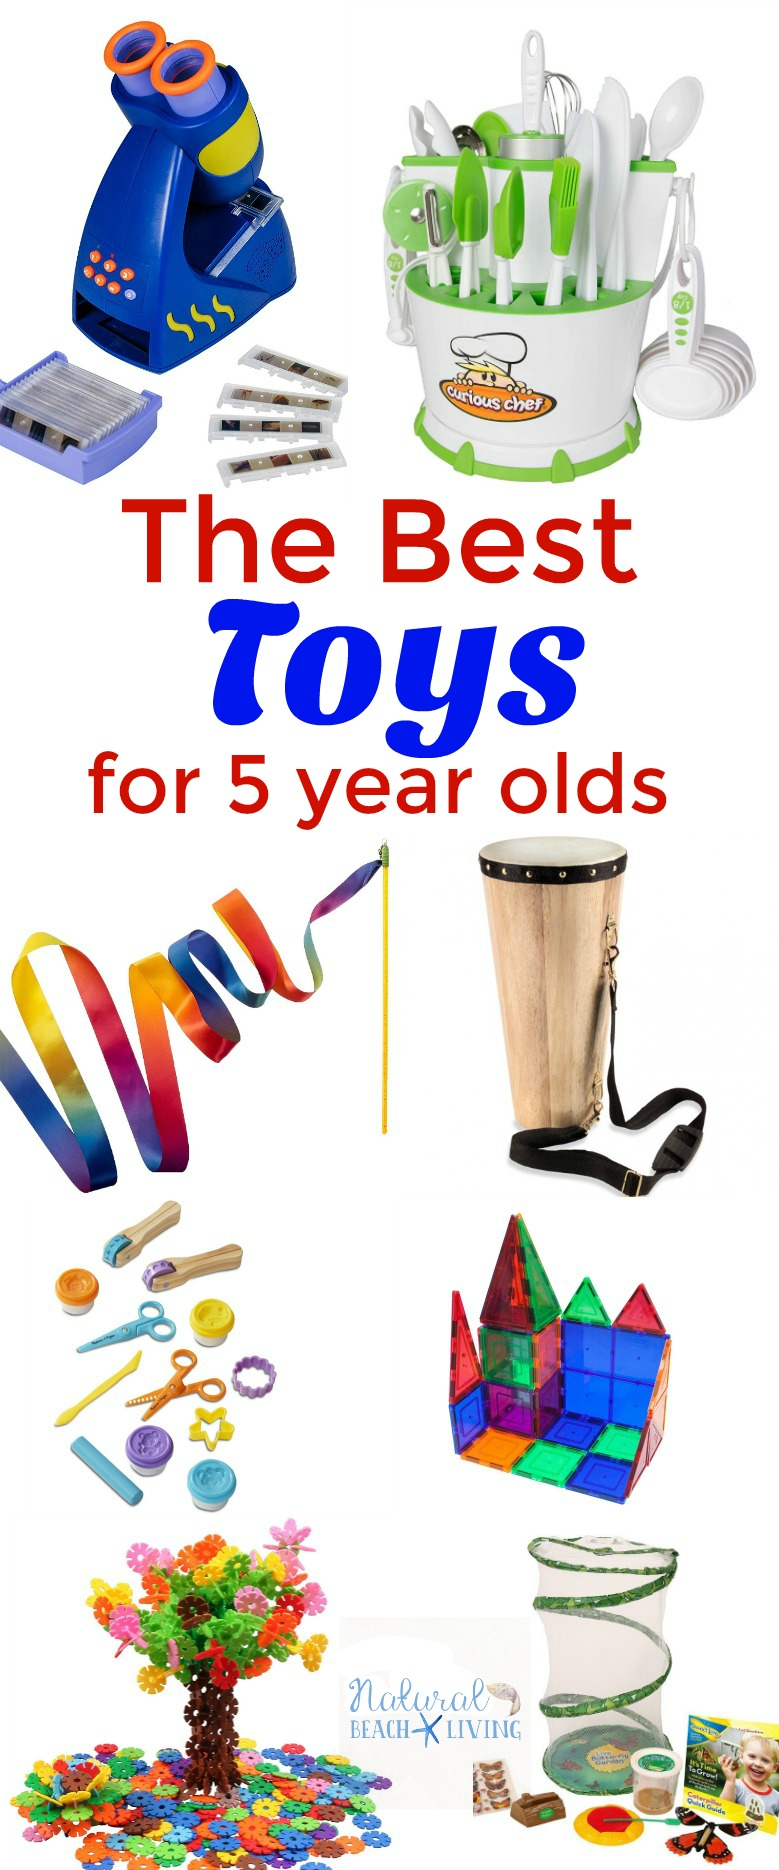 Popular Toys For 5 Year Olds : The best montessori toys for year olds natural beach